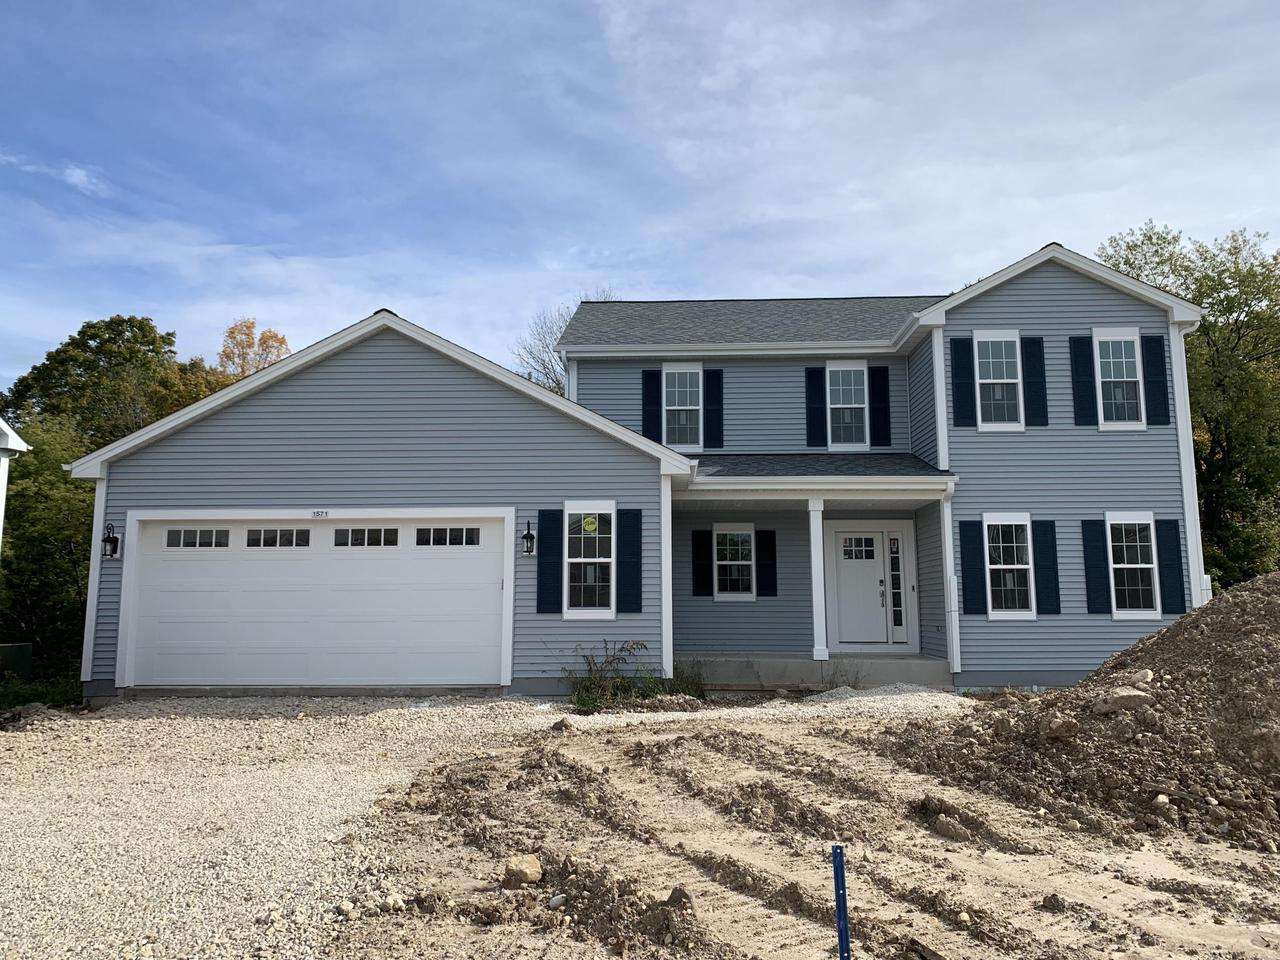 NEW CONSTRUCTION by Stepping Stone homes. The Camden offers lots of space in a traditional two story home....but this home is anything but traditional! You'll find 3 BRs up & a den/office option on the main floor. Spacious MBR w/private MBA & HUGE walk in closet. Open concept kitchen/living room w/gas fireplace and patio door off dining area. 2x6 exterior framing and amazing upgrades like soft close dovetail cabinetry, quartz and marble counter tops, double sinks in the bathrooms, upgraded flooring, 8 ft GA doors & more! This home comes equipped with Smart Home Technology, including integrated lighting, door locks, ecobee smart thermostat, video doorbell, Lift Master garage door. Smart home technology at it's best. $2500 buyer credit for A/O by 10/31/19